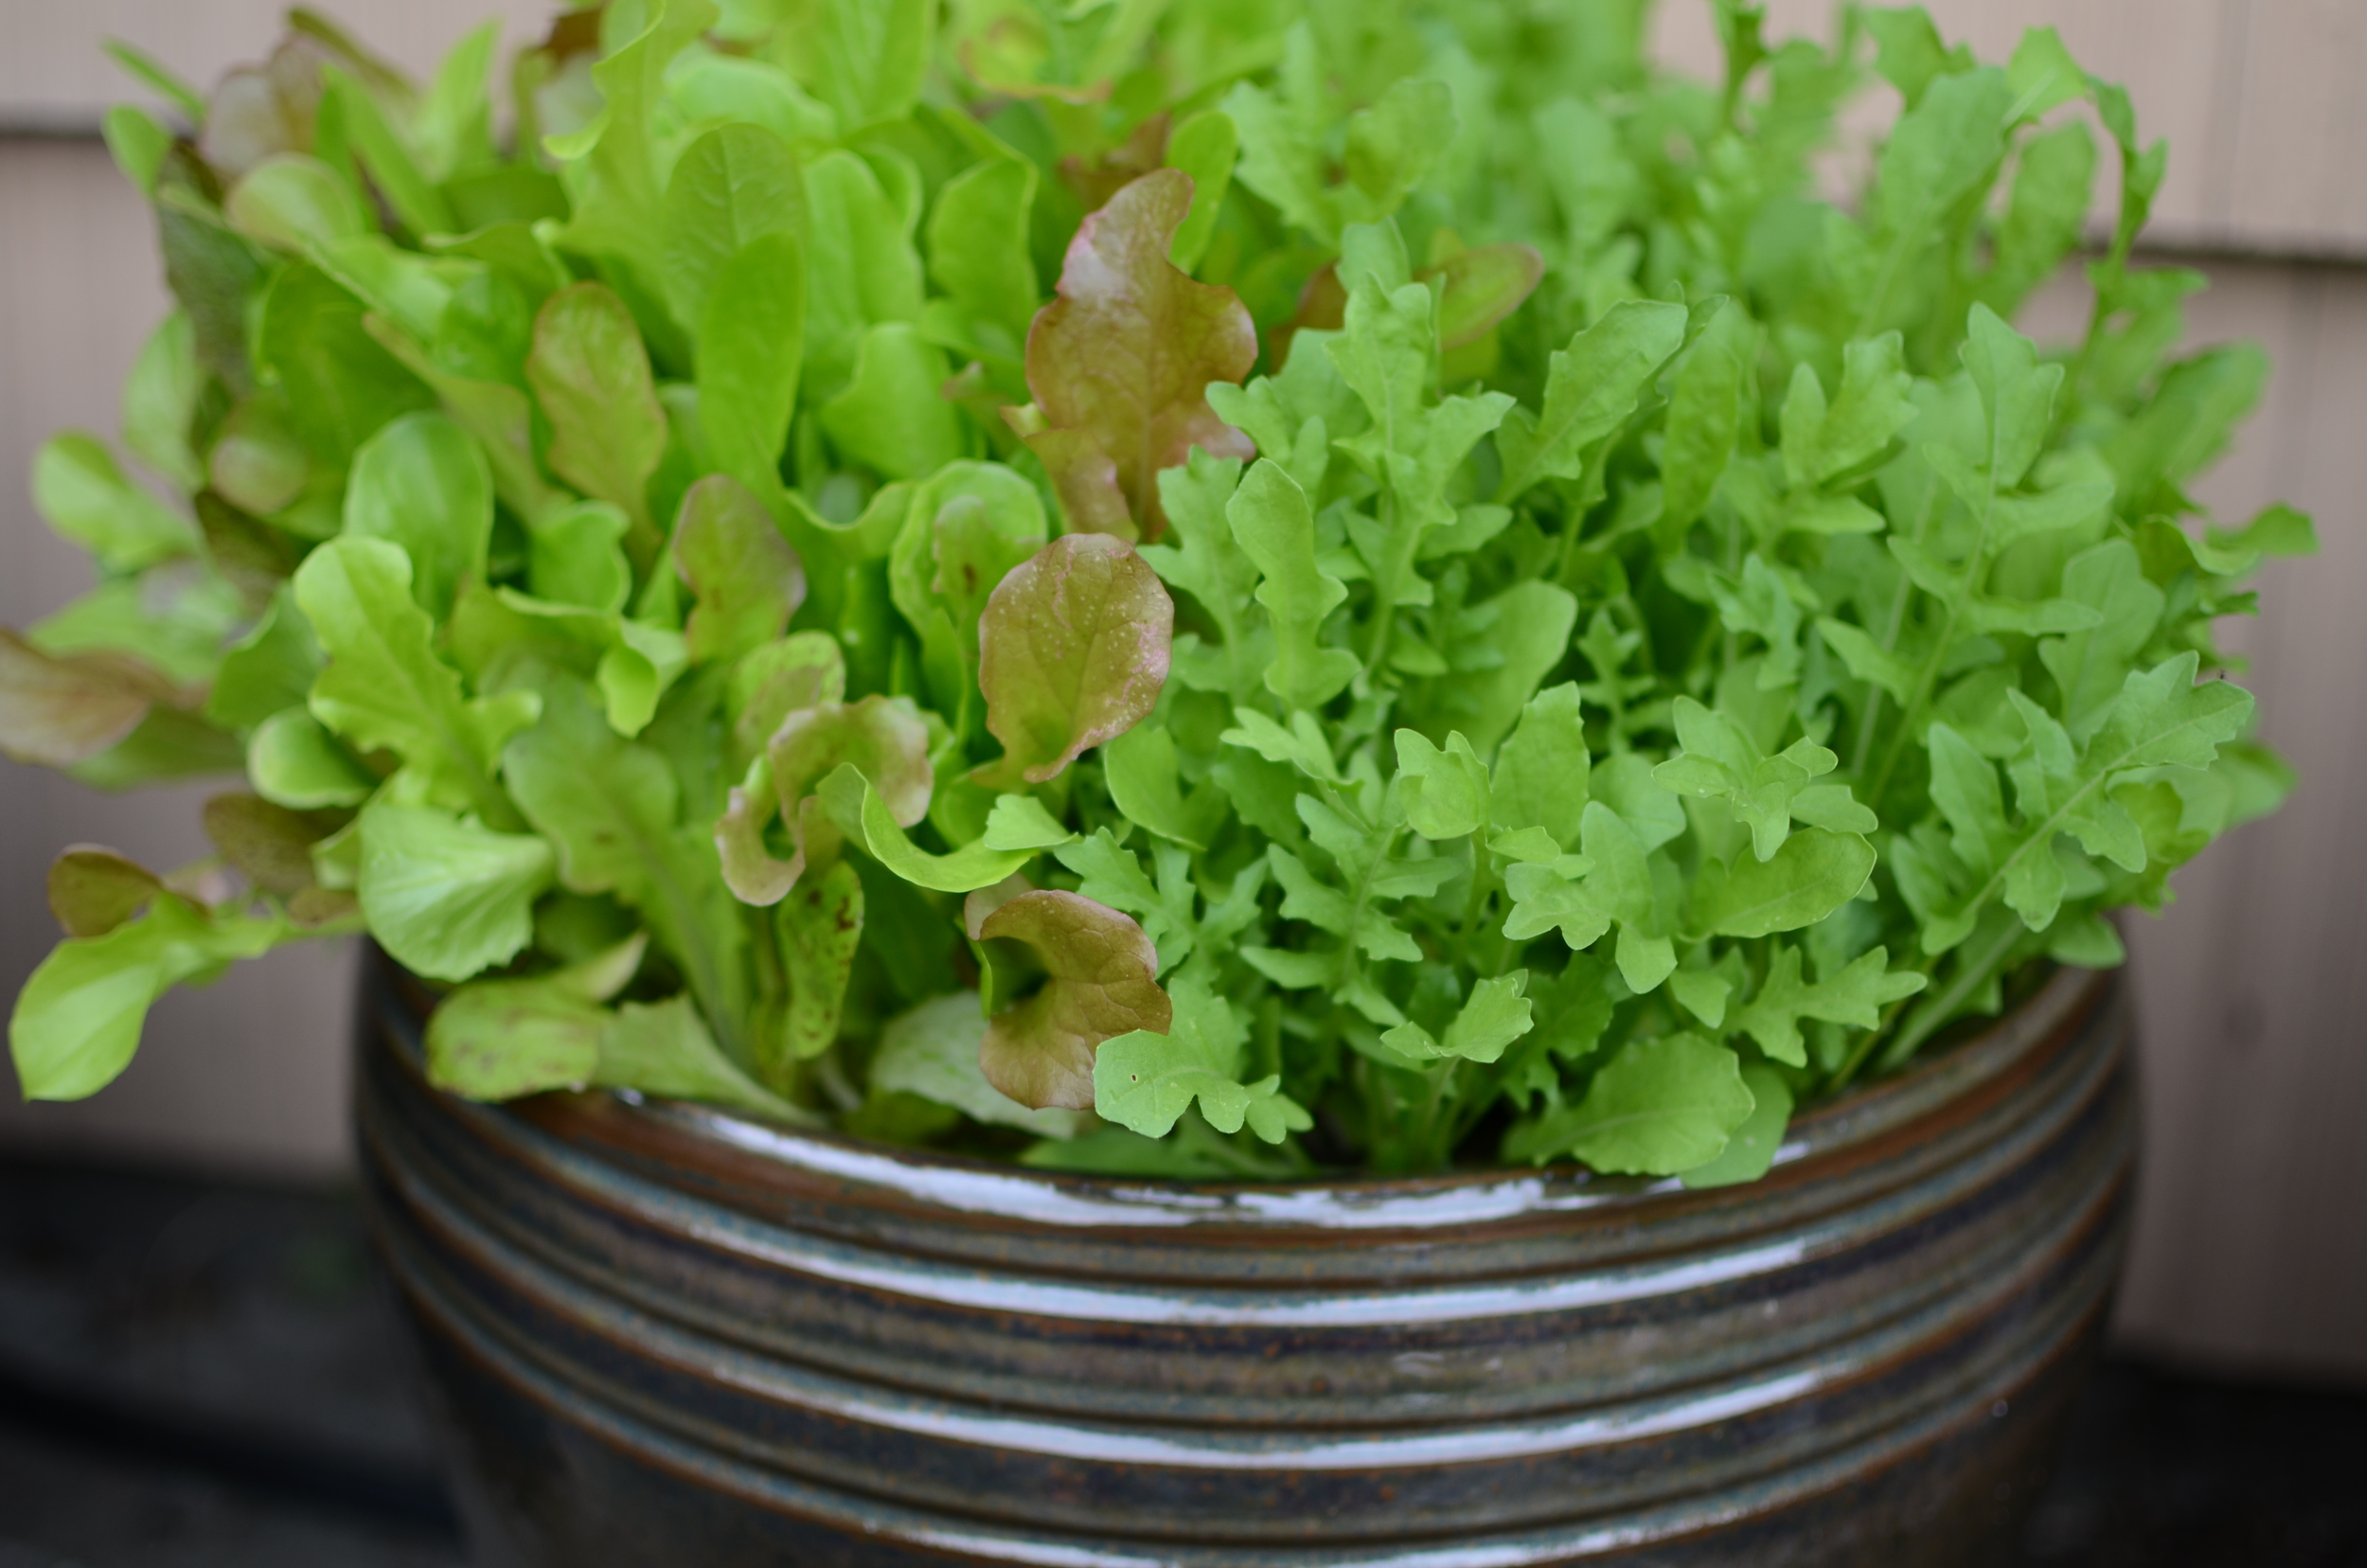 Mixed lettuce in a ceramic pot -  Photo by Seattle Urban Farm Company